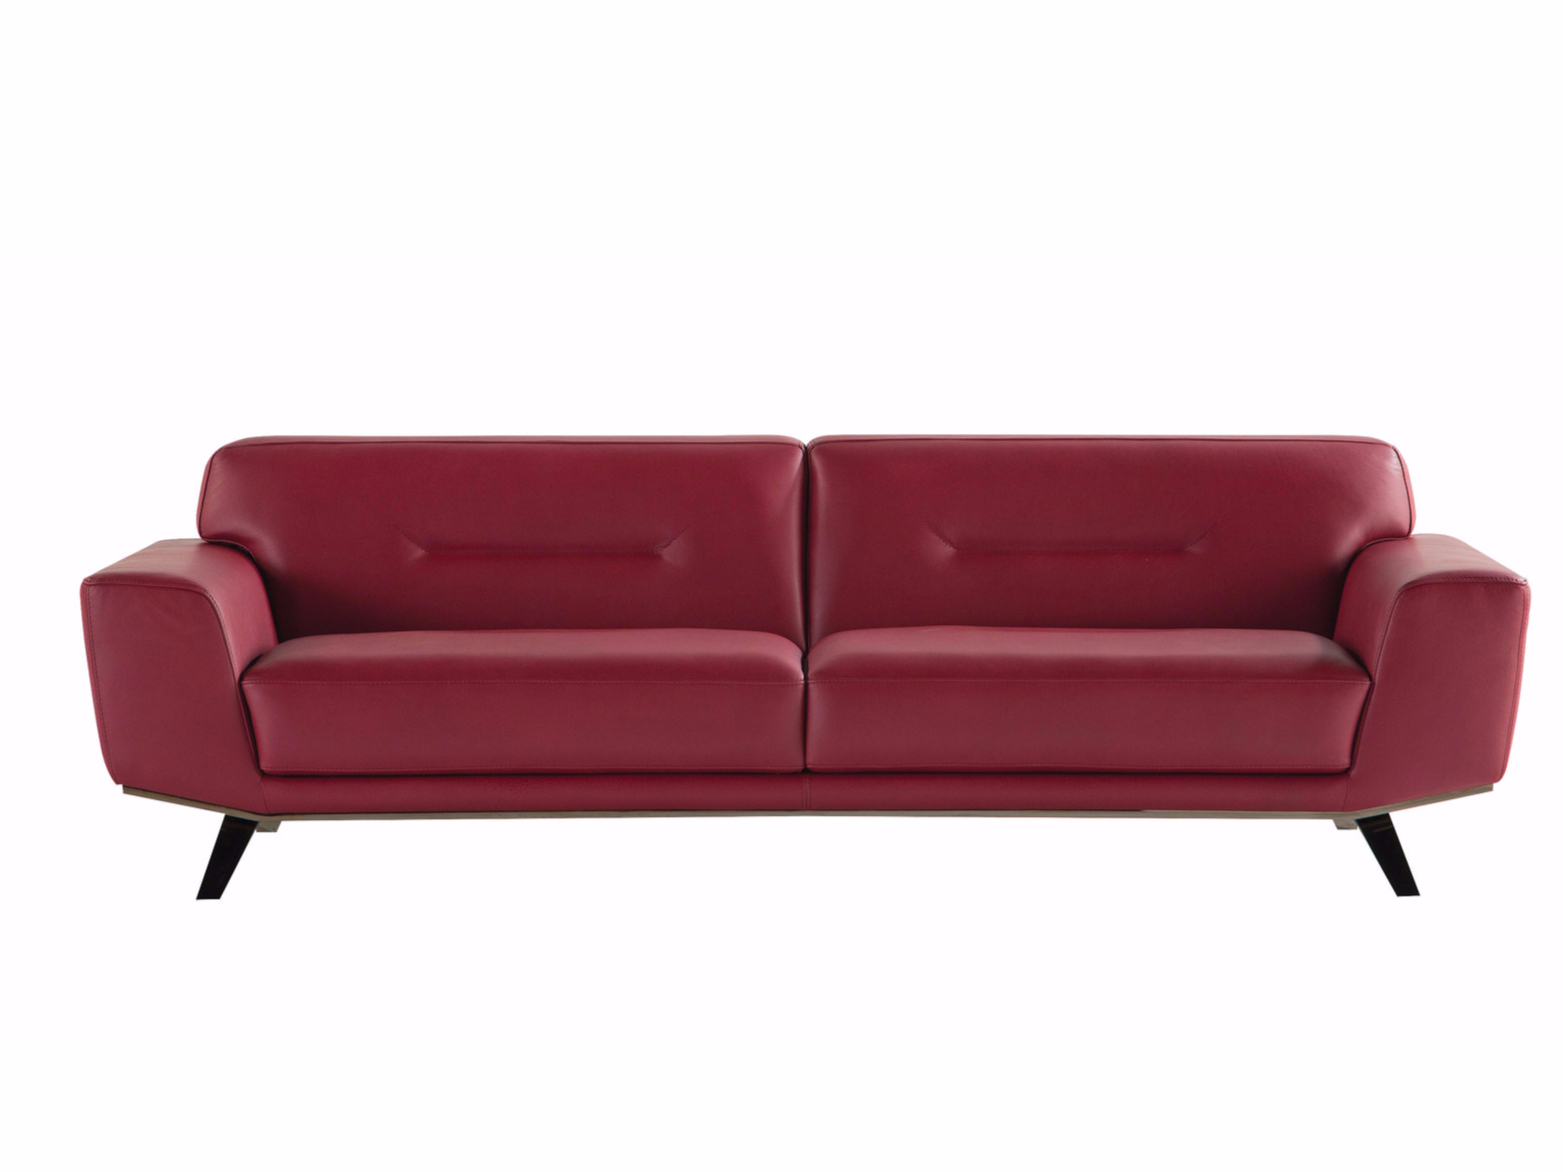 Roche bobois leather sofa roche bobois furniture ebay - Sofas roche bobois ...